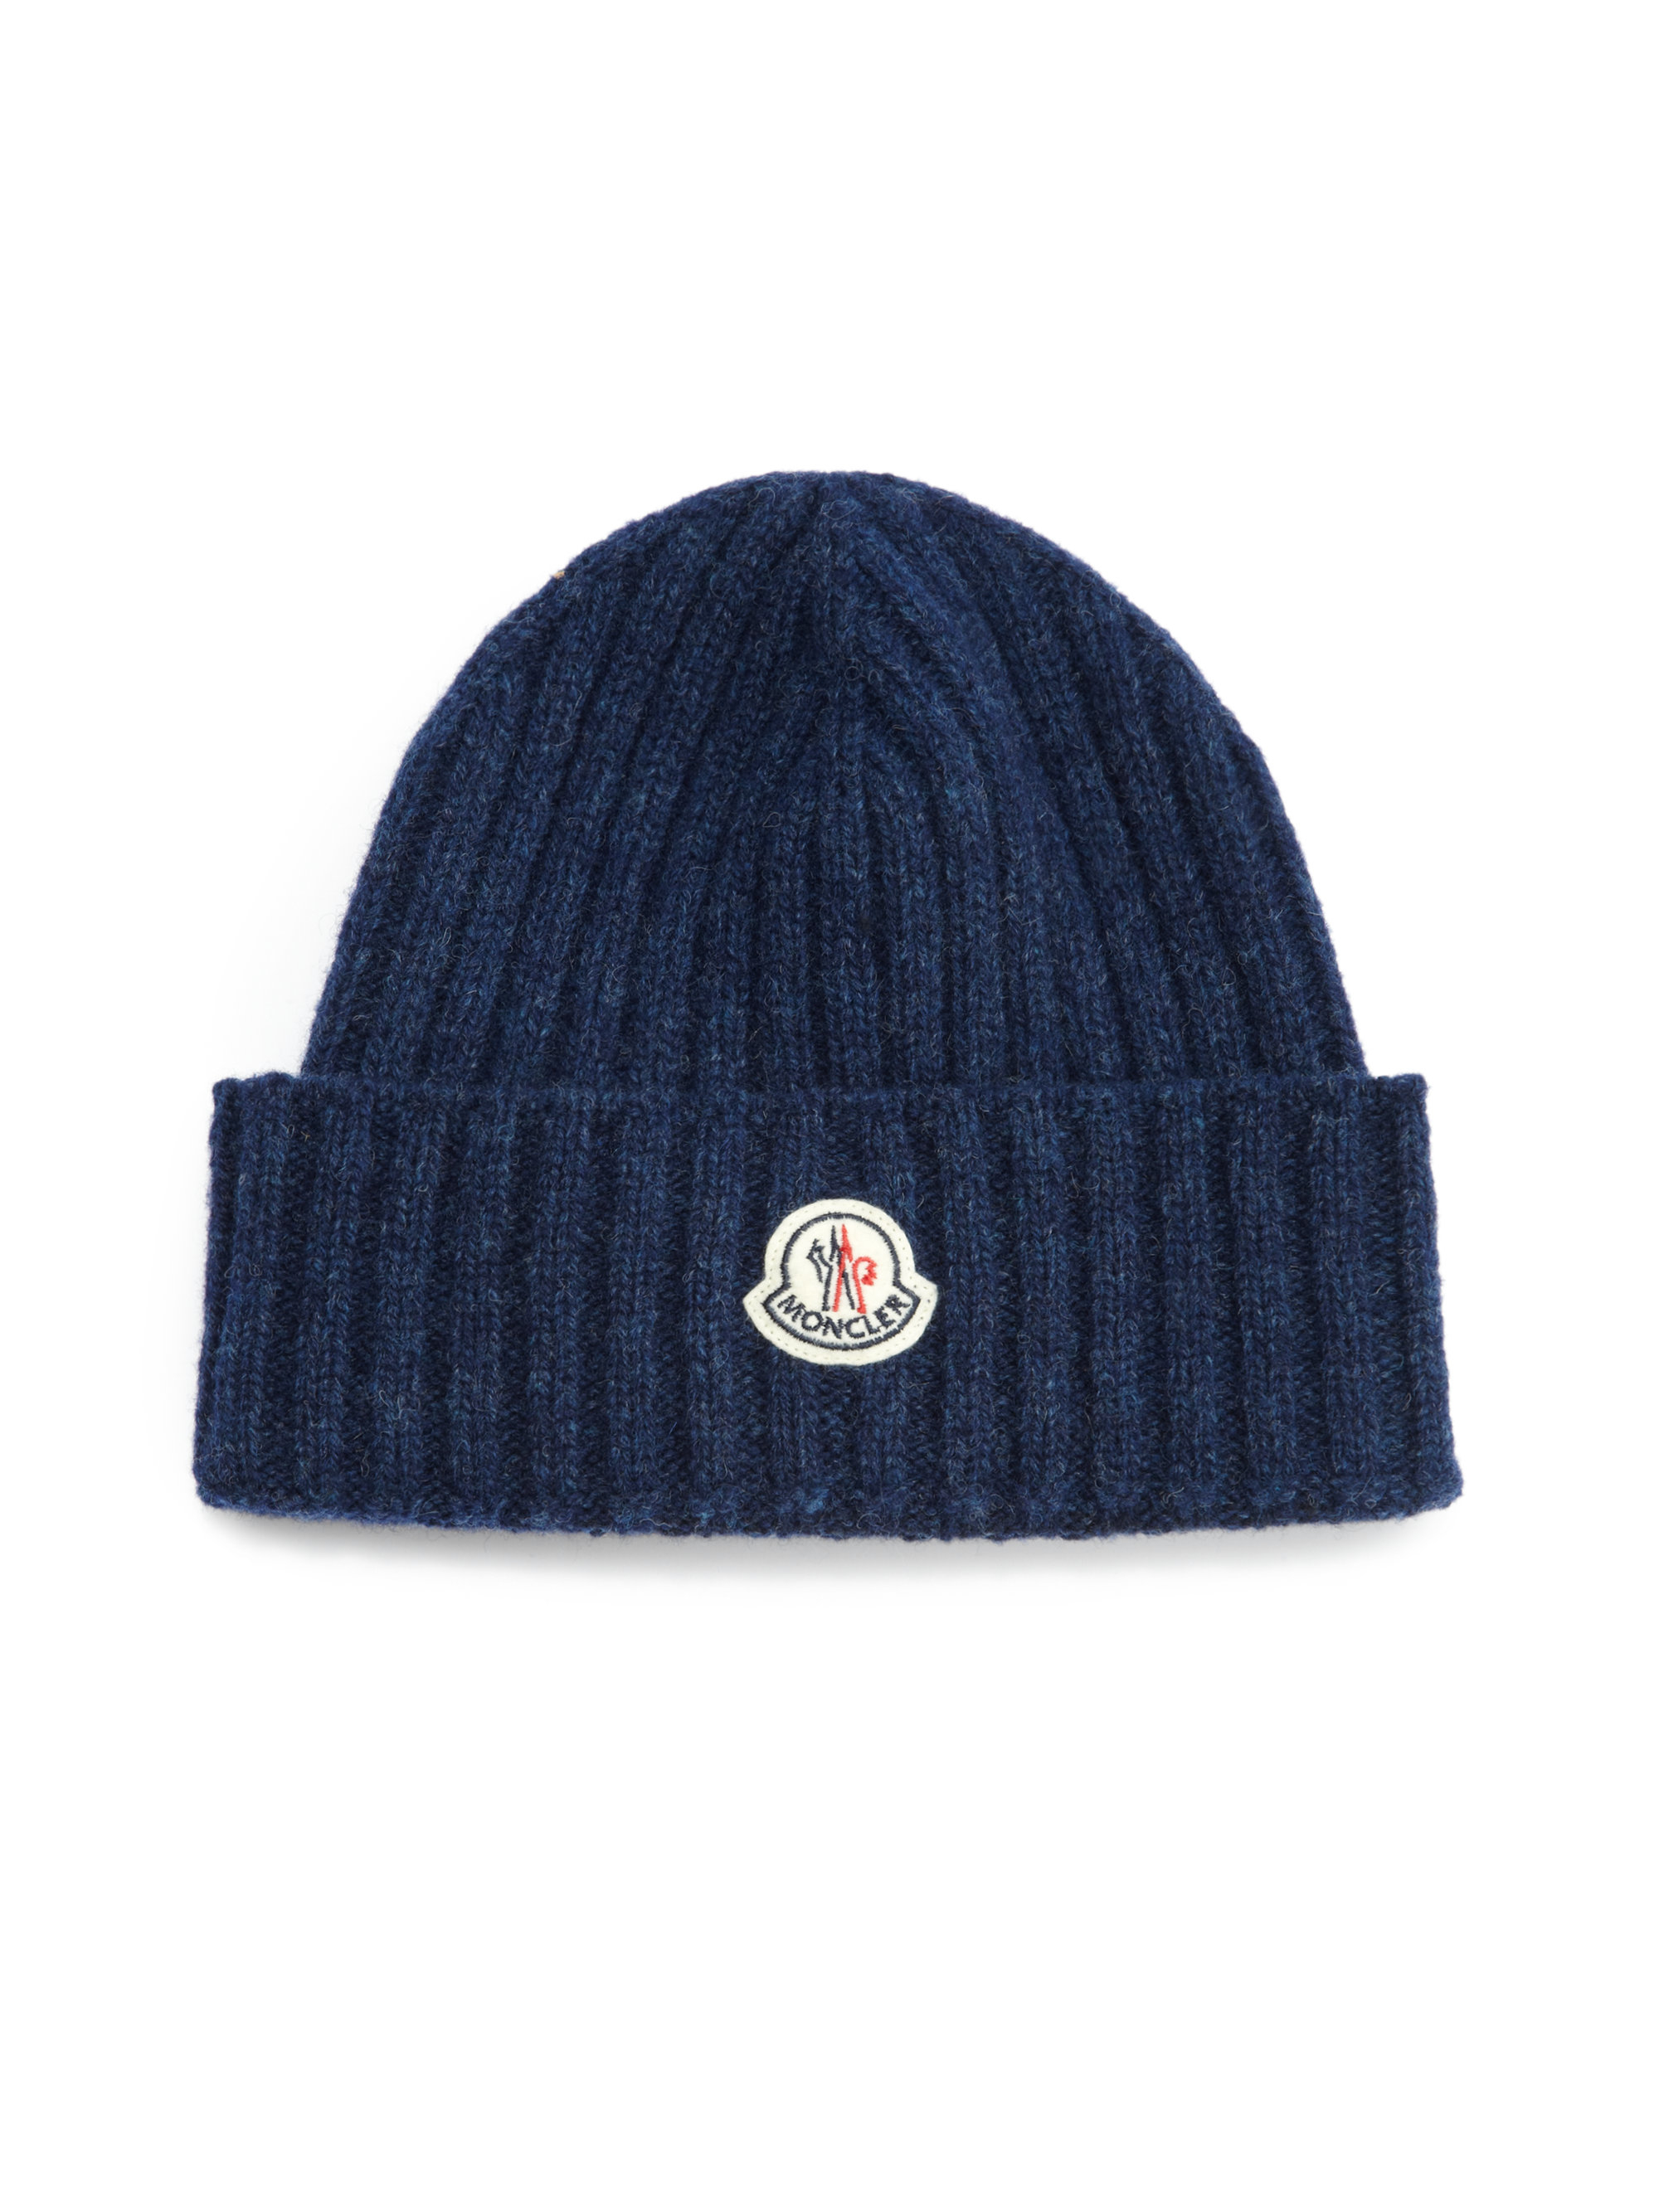 Lyst - Moncler Wool Hat in Blue for Men 022e4d3dc32